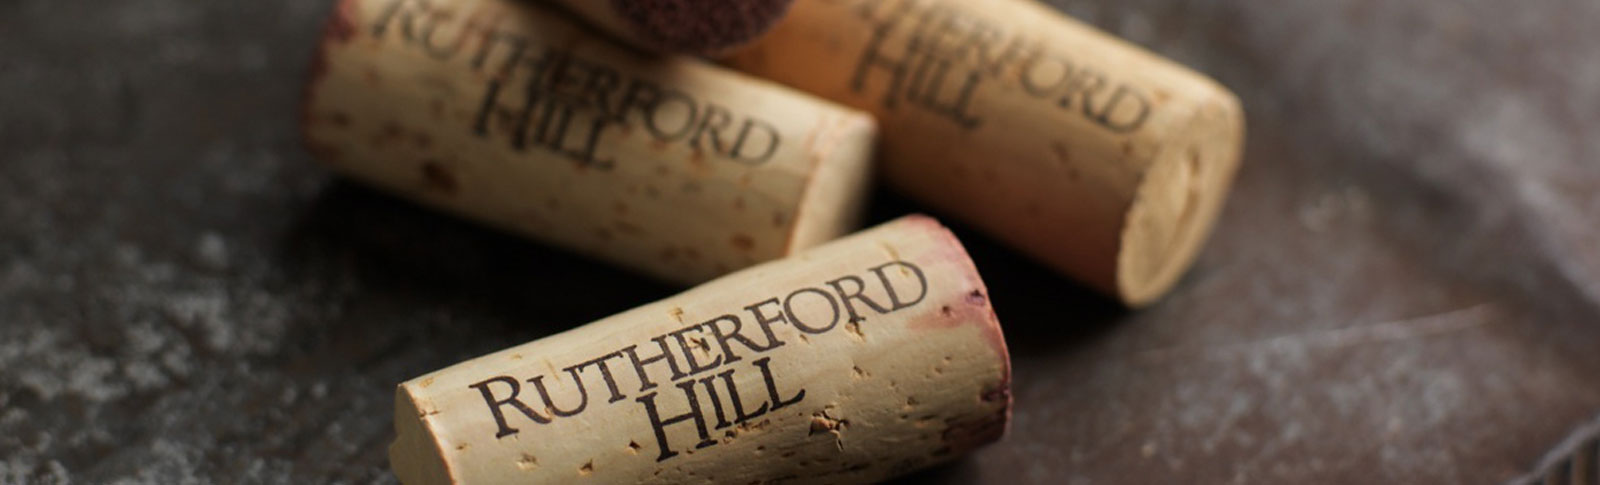 Rutherford Hill banner image